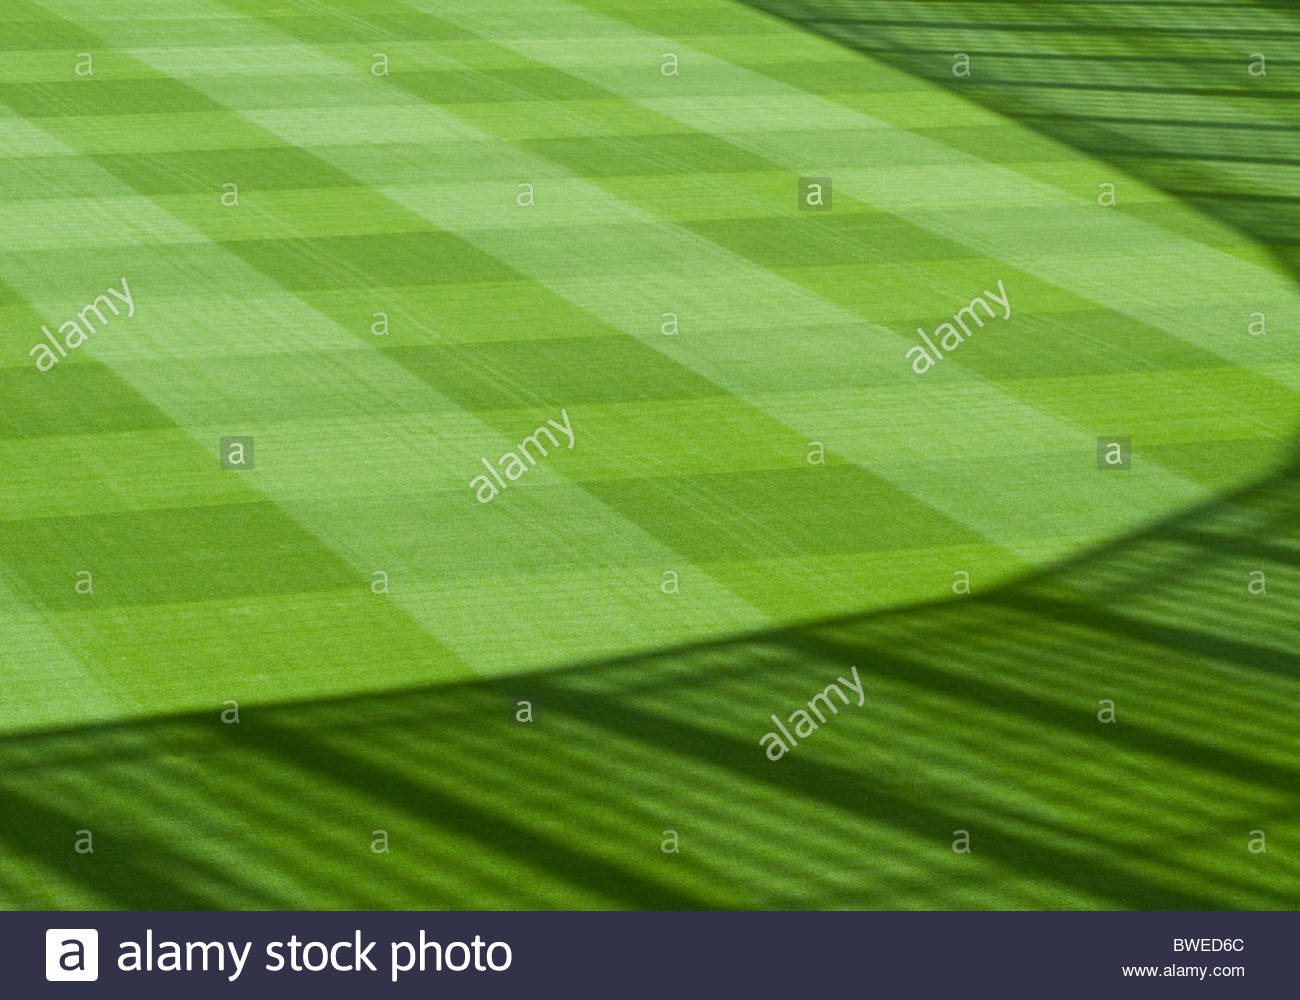 Green, landscaped grass of sports field with fence shadow - Stock Image